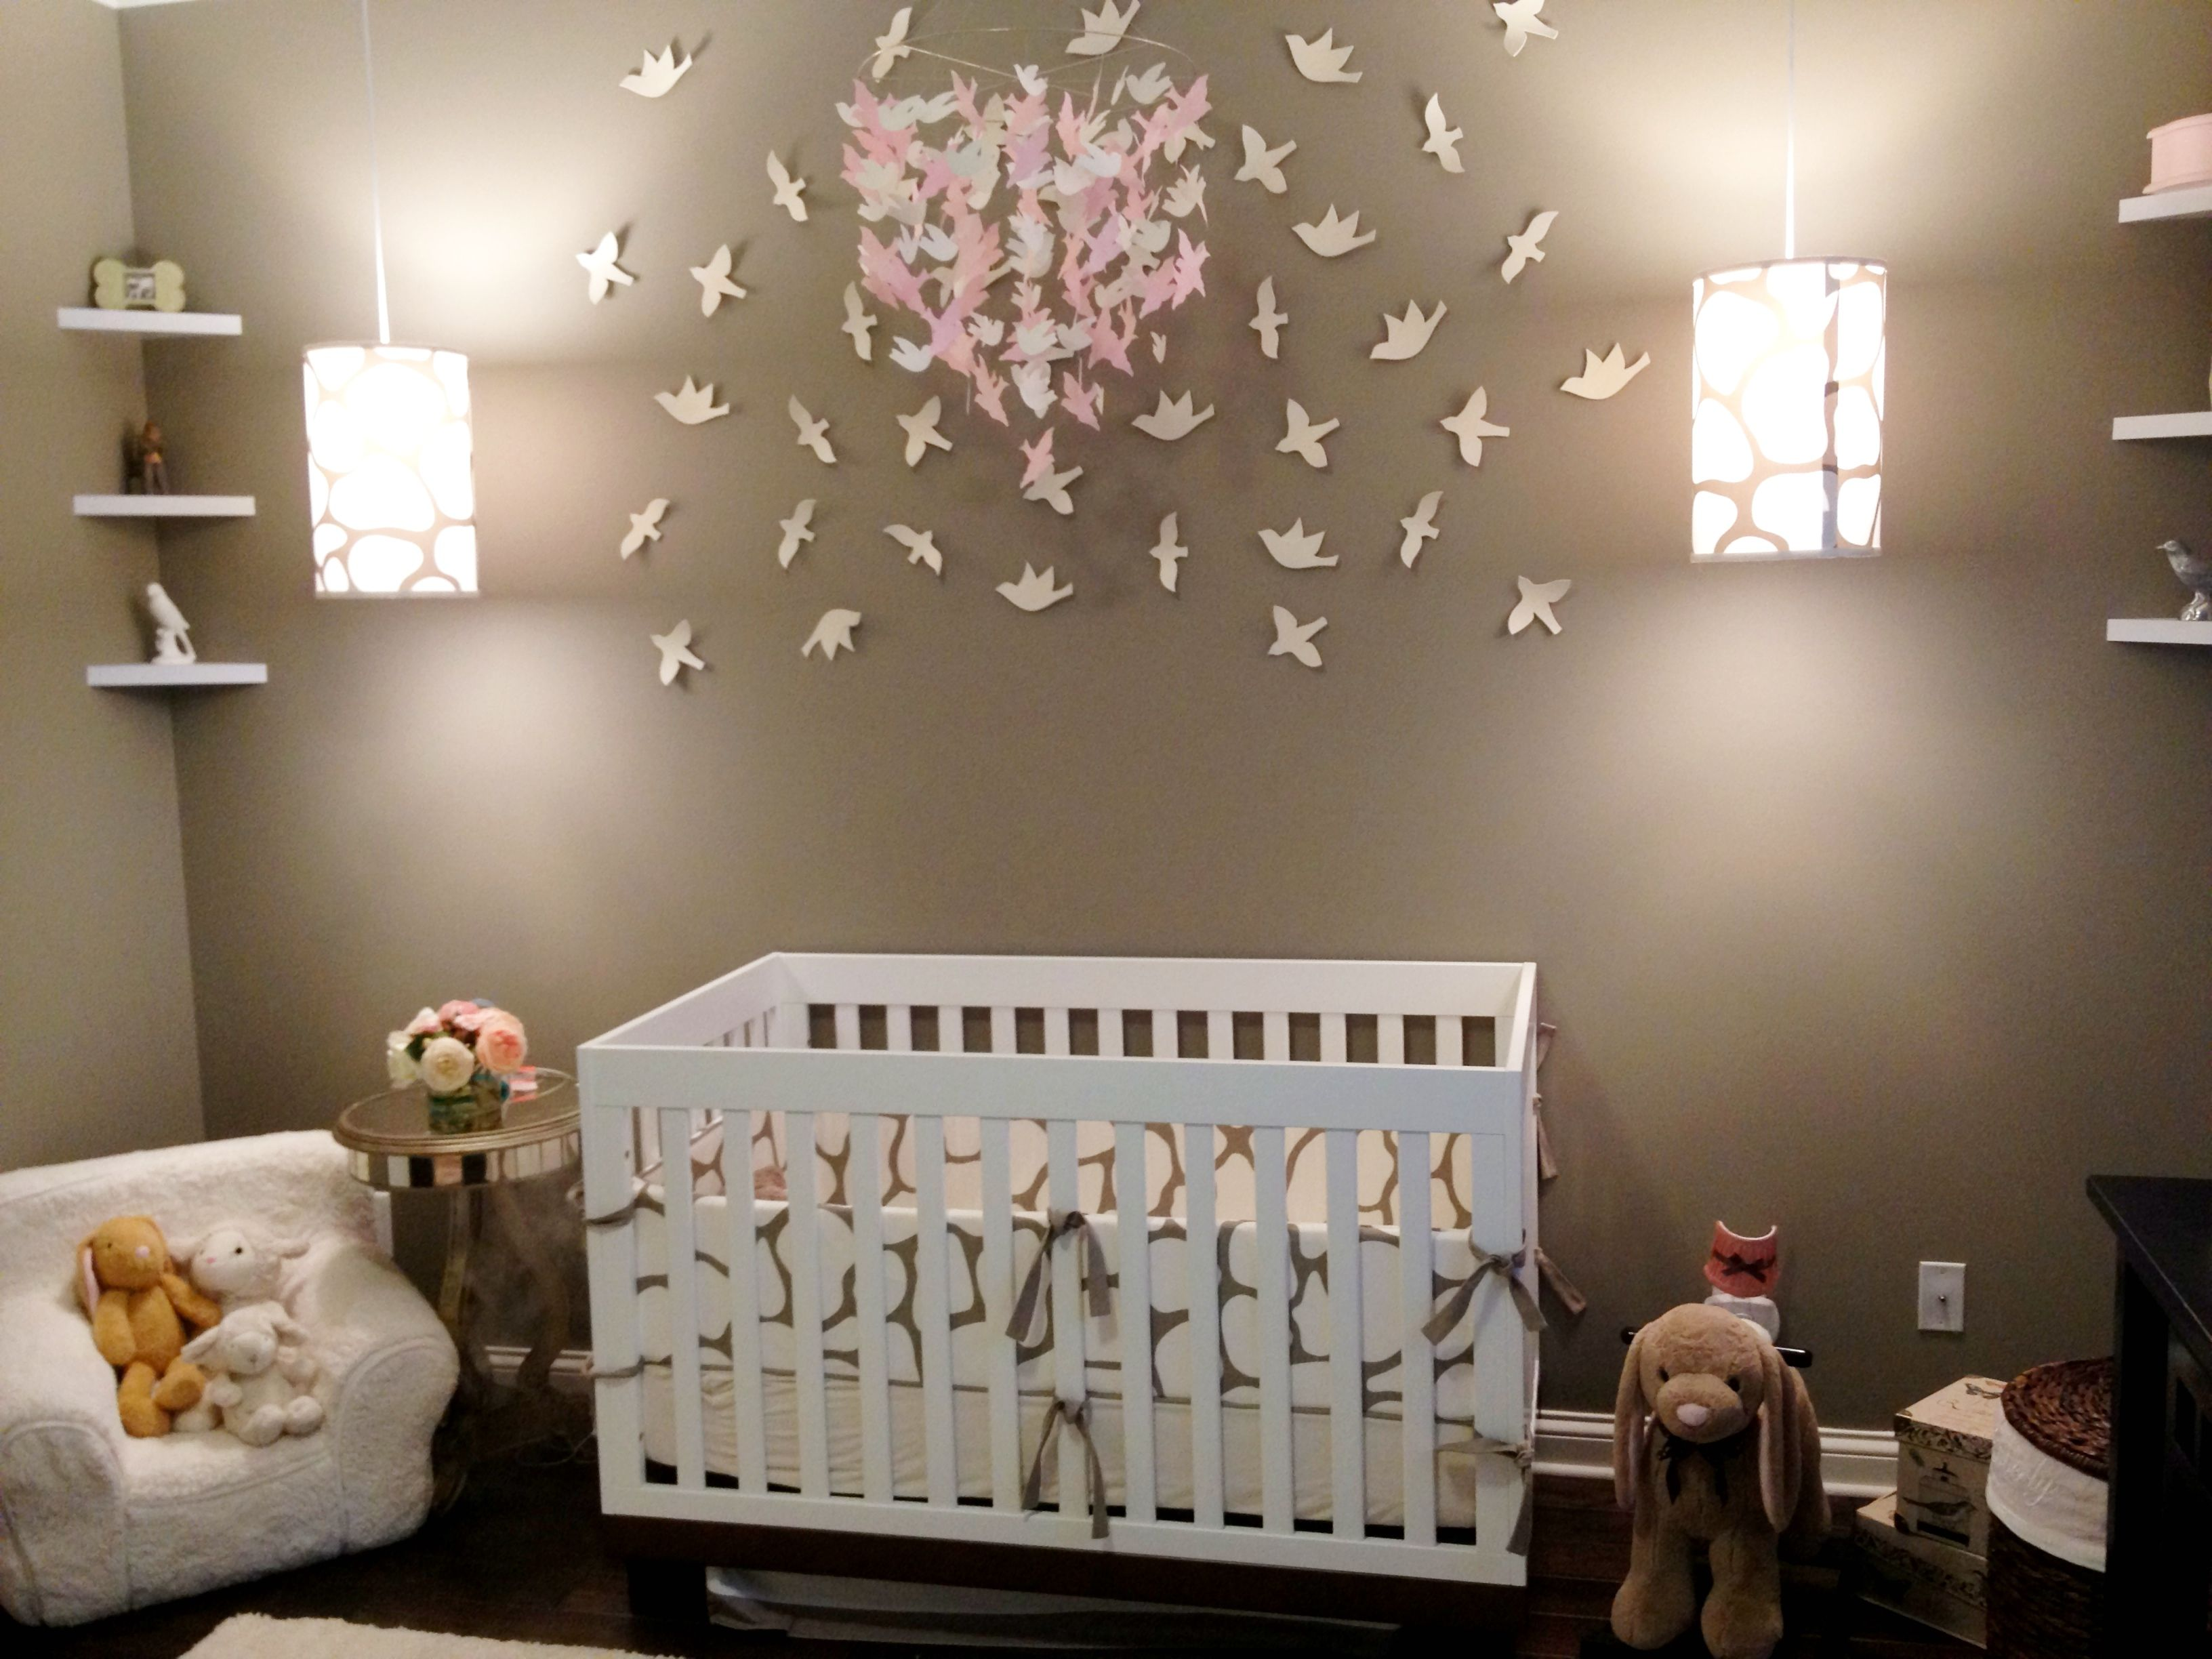 Pottery Barn Kids Birds- Target (DIY Paint Job